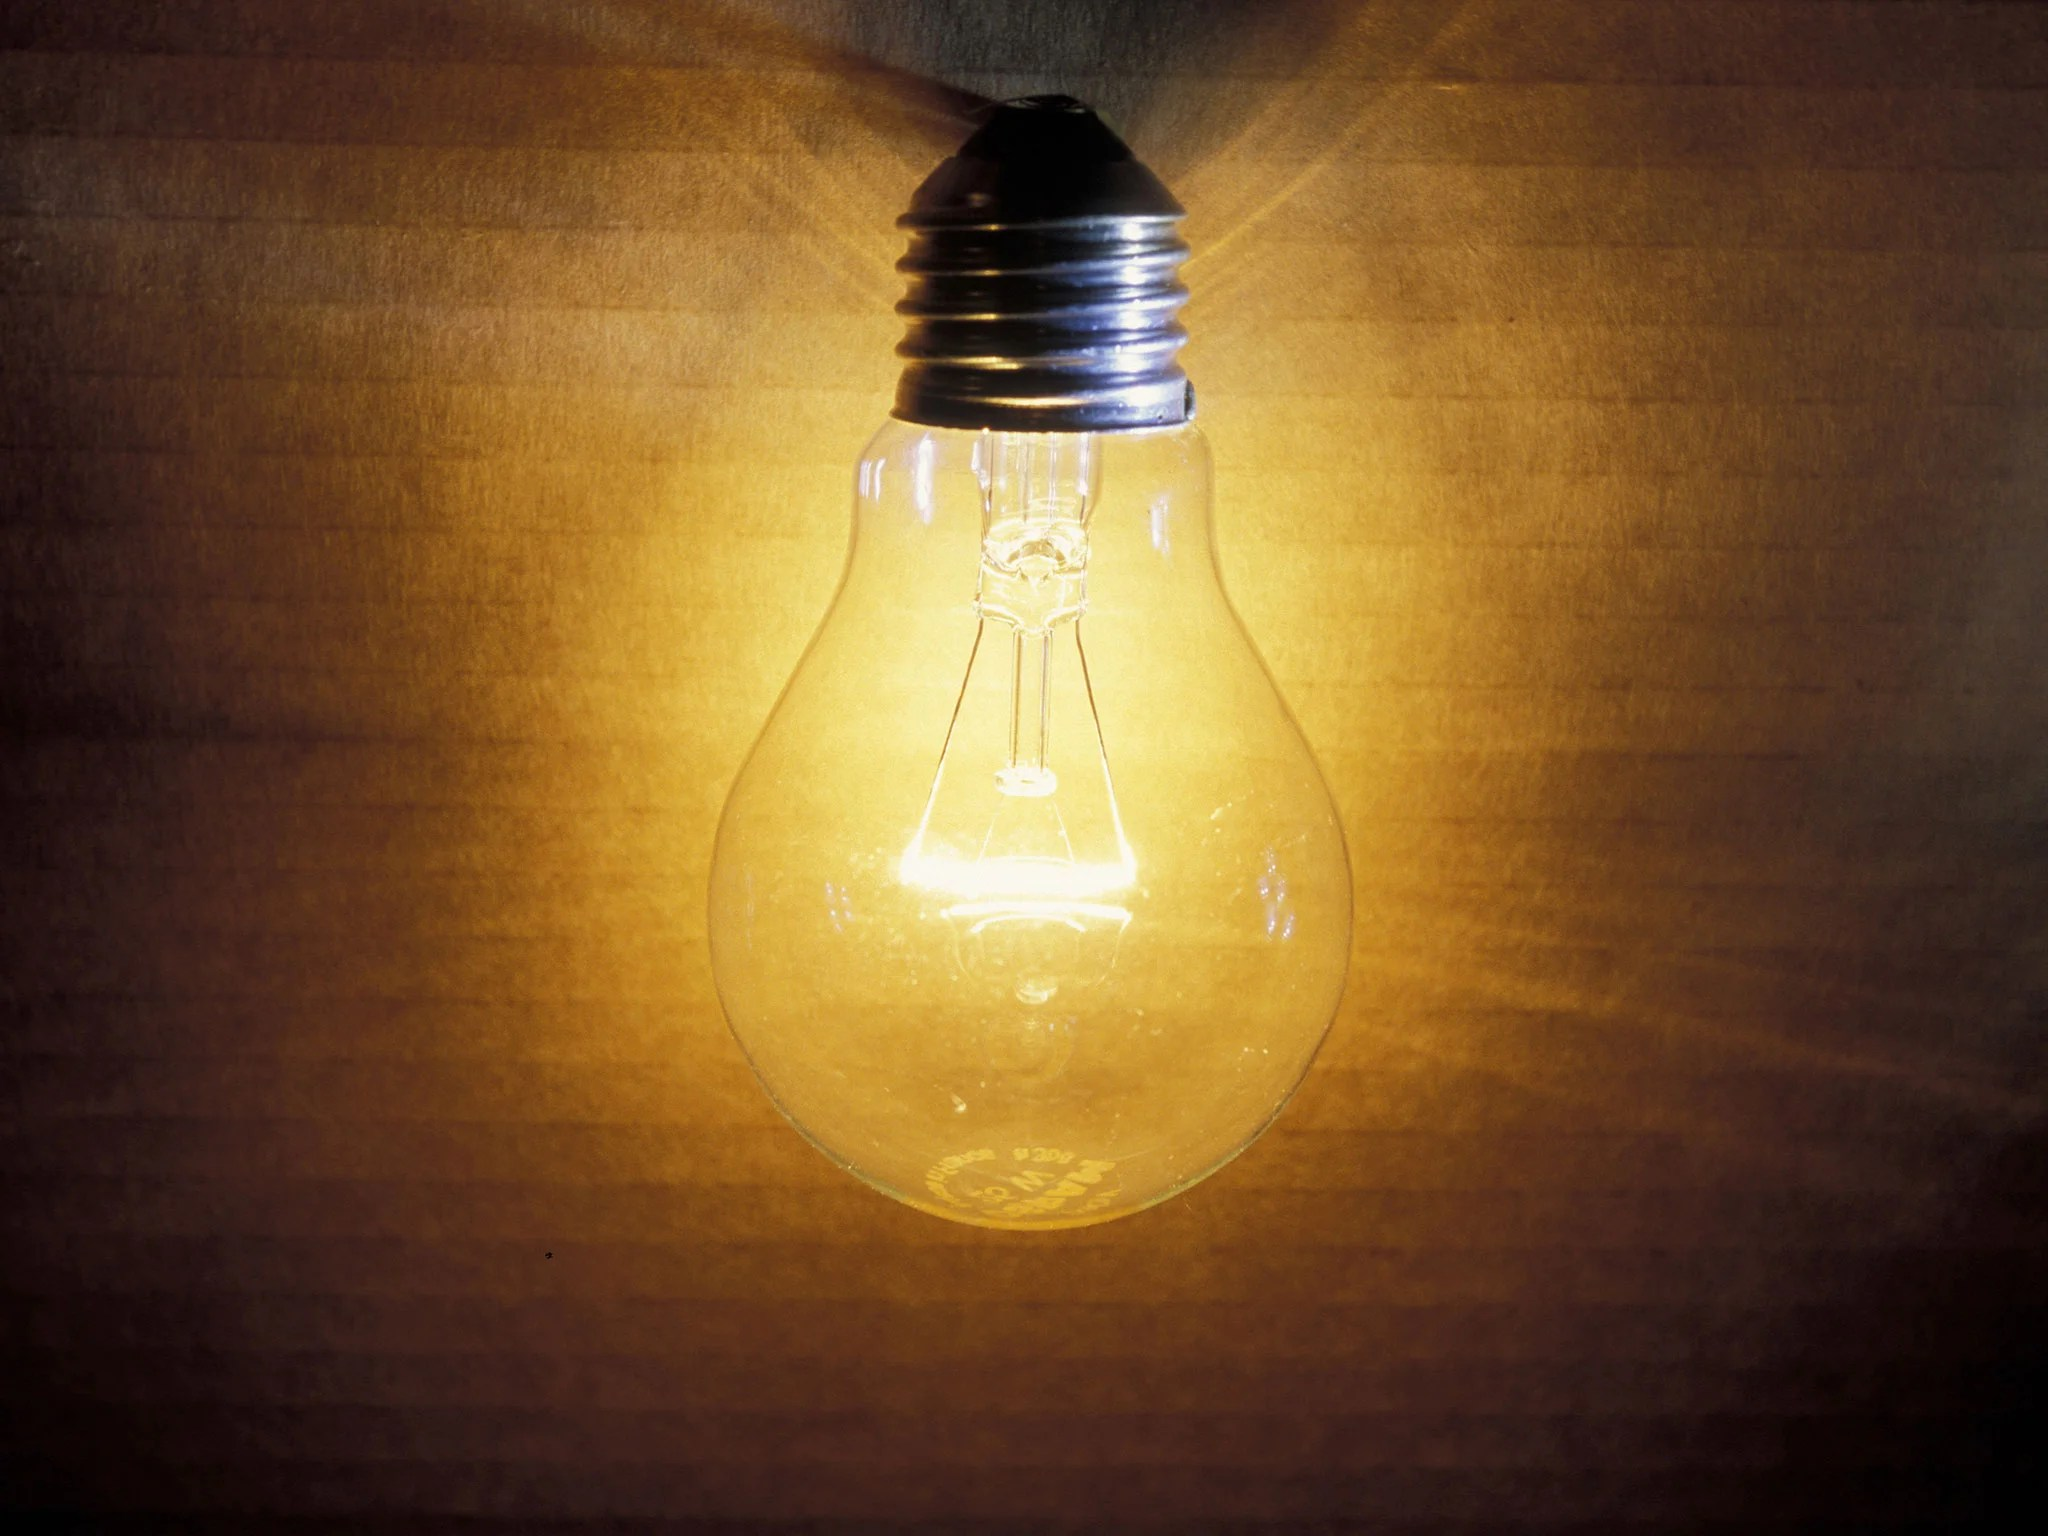 Lightbulb Lights Old Fashioned Light Bulbs Could Be Set For Comeback After Light